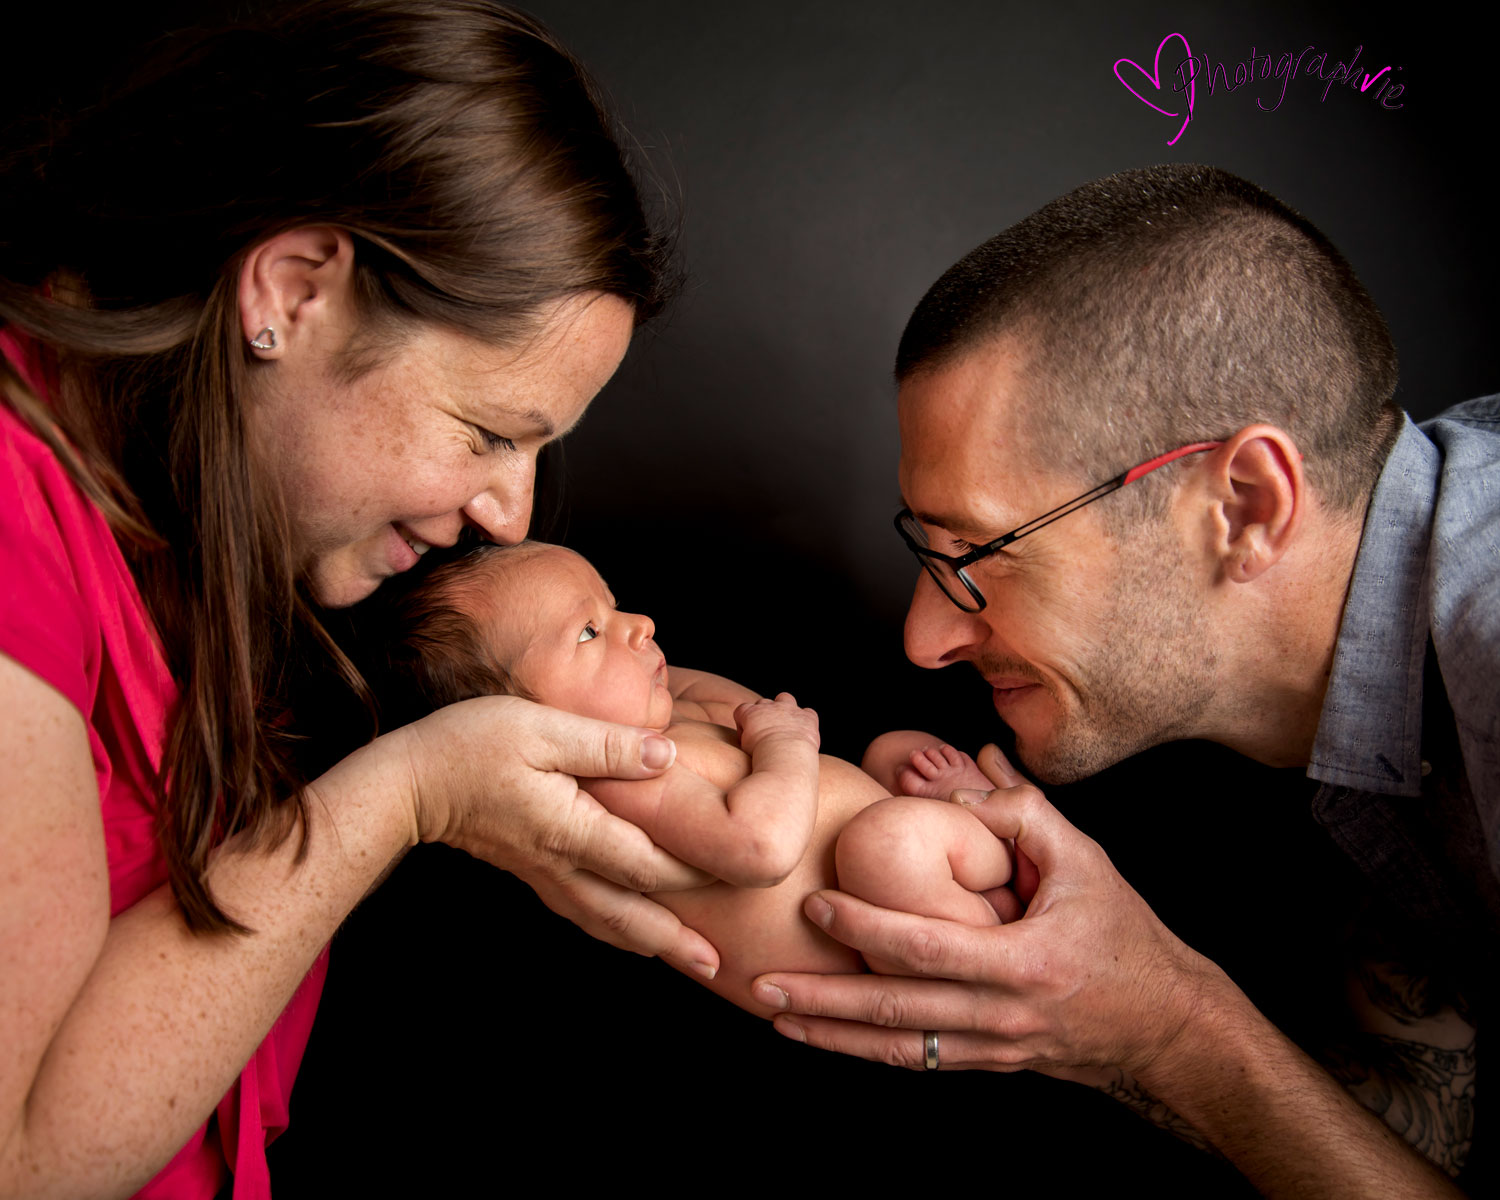 Newborn_Baby_photography_Ely_Cambridgeshire-baby-finley-black-backdrop-close-up-of-parents-and-baby.jpg